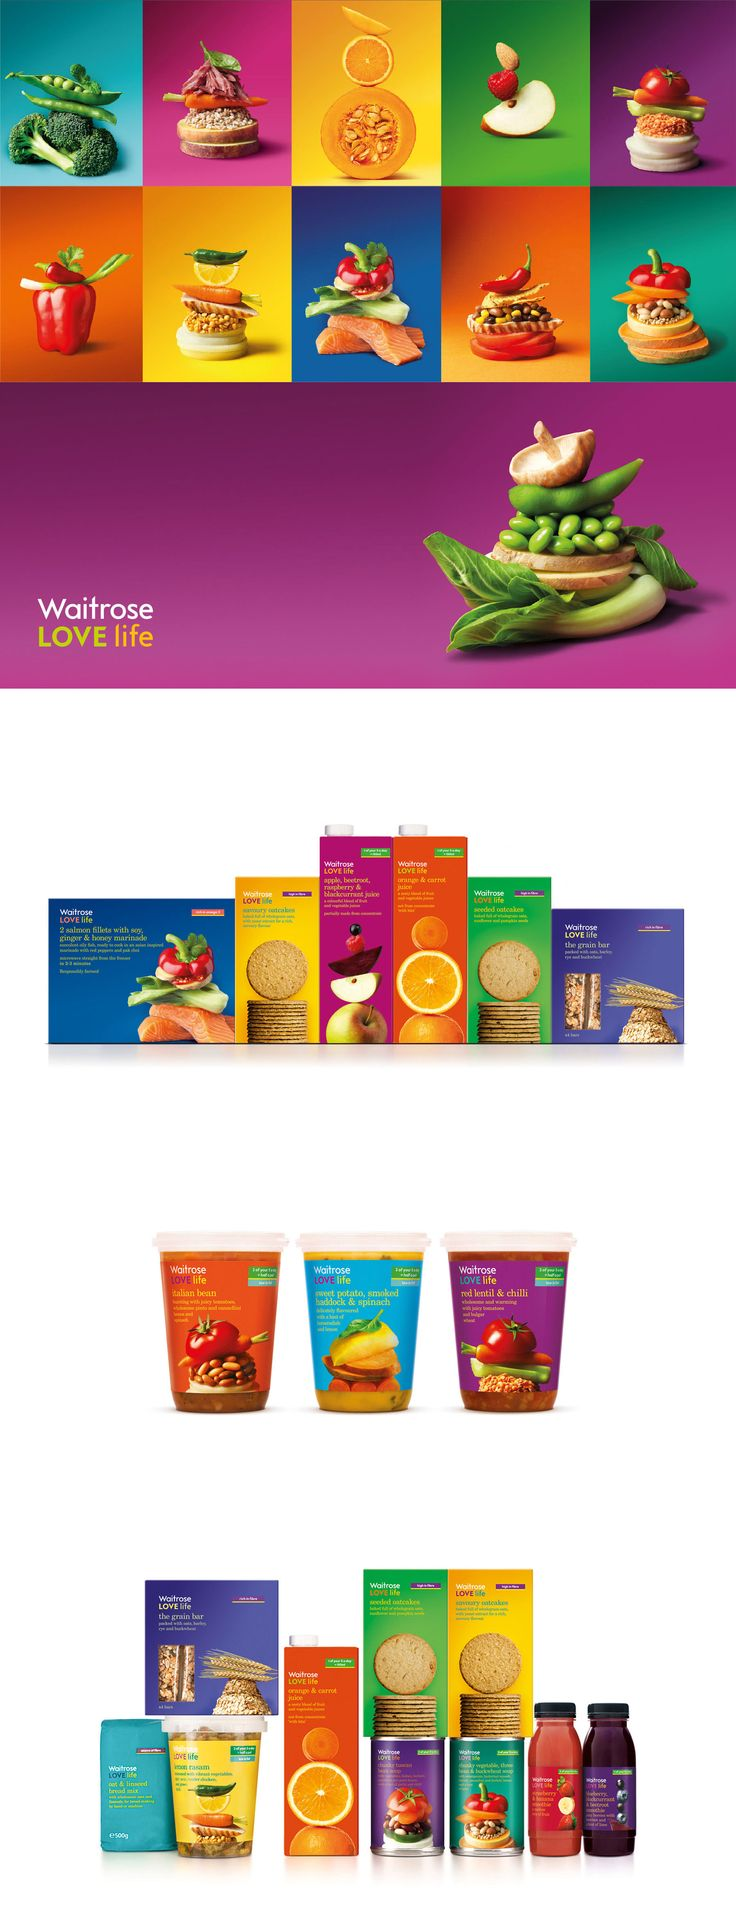 Packaging designed by Pearlfisher for the Waitrose LOVE life